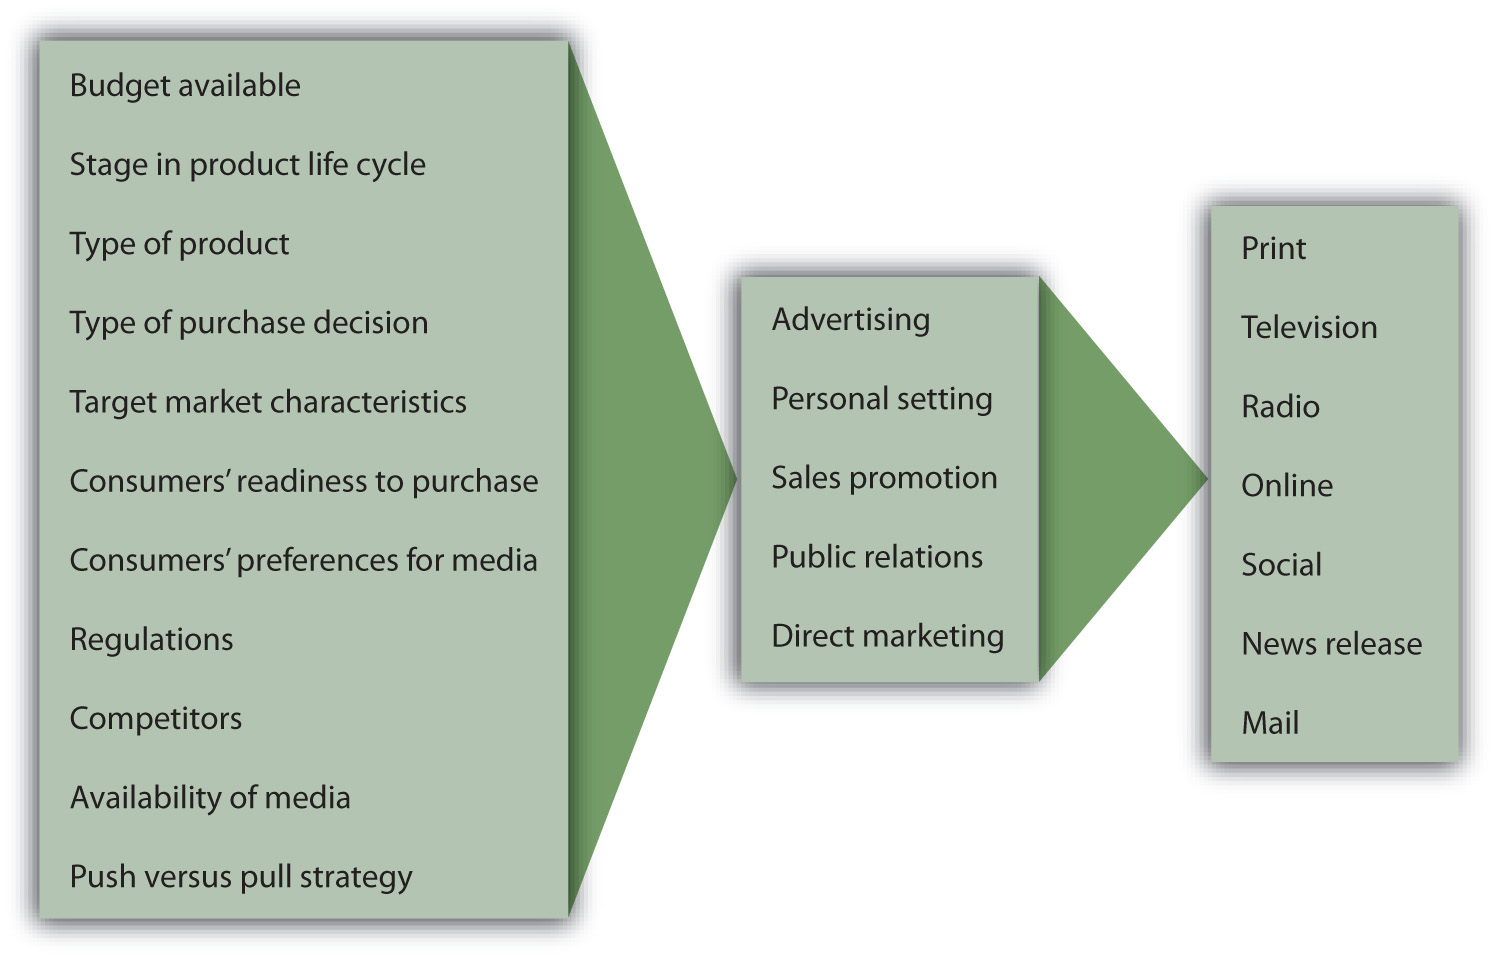 Factors that influence the selection of a promotion mix are: budget available; stage in product life cycle; type of product; type of purchase decision; target market characteristics; consumers' readiness to purchase; consumers' preferences for media; regulations; competitors; availability of media; push vs. pull strategy. These factors influence which of the following are selected: advertising, personal selling, sales promotion, public relations, direct marketing. Decisions about those, in turn, affect selection decisions about the following: print, television, radio, online, social, news release, mail.